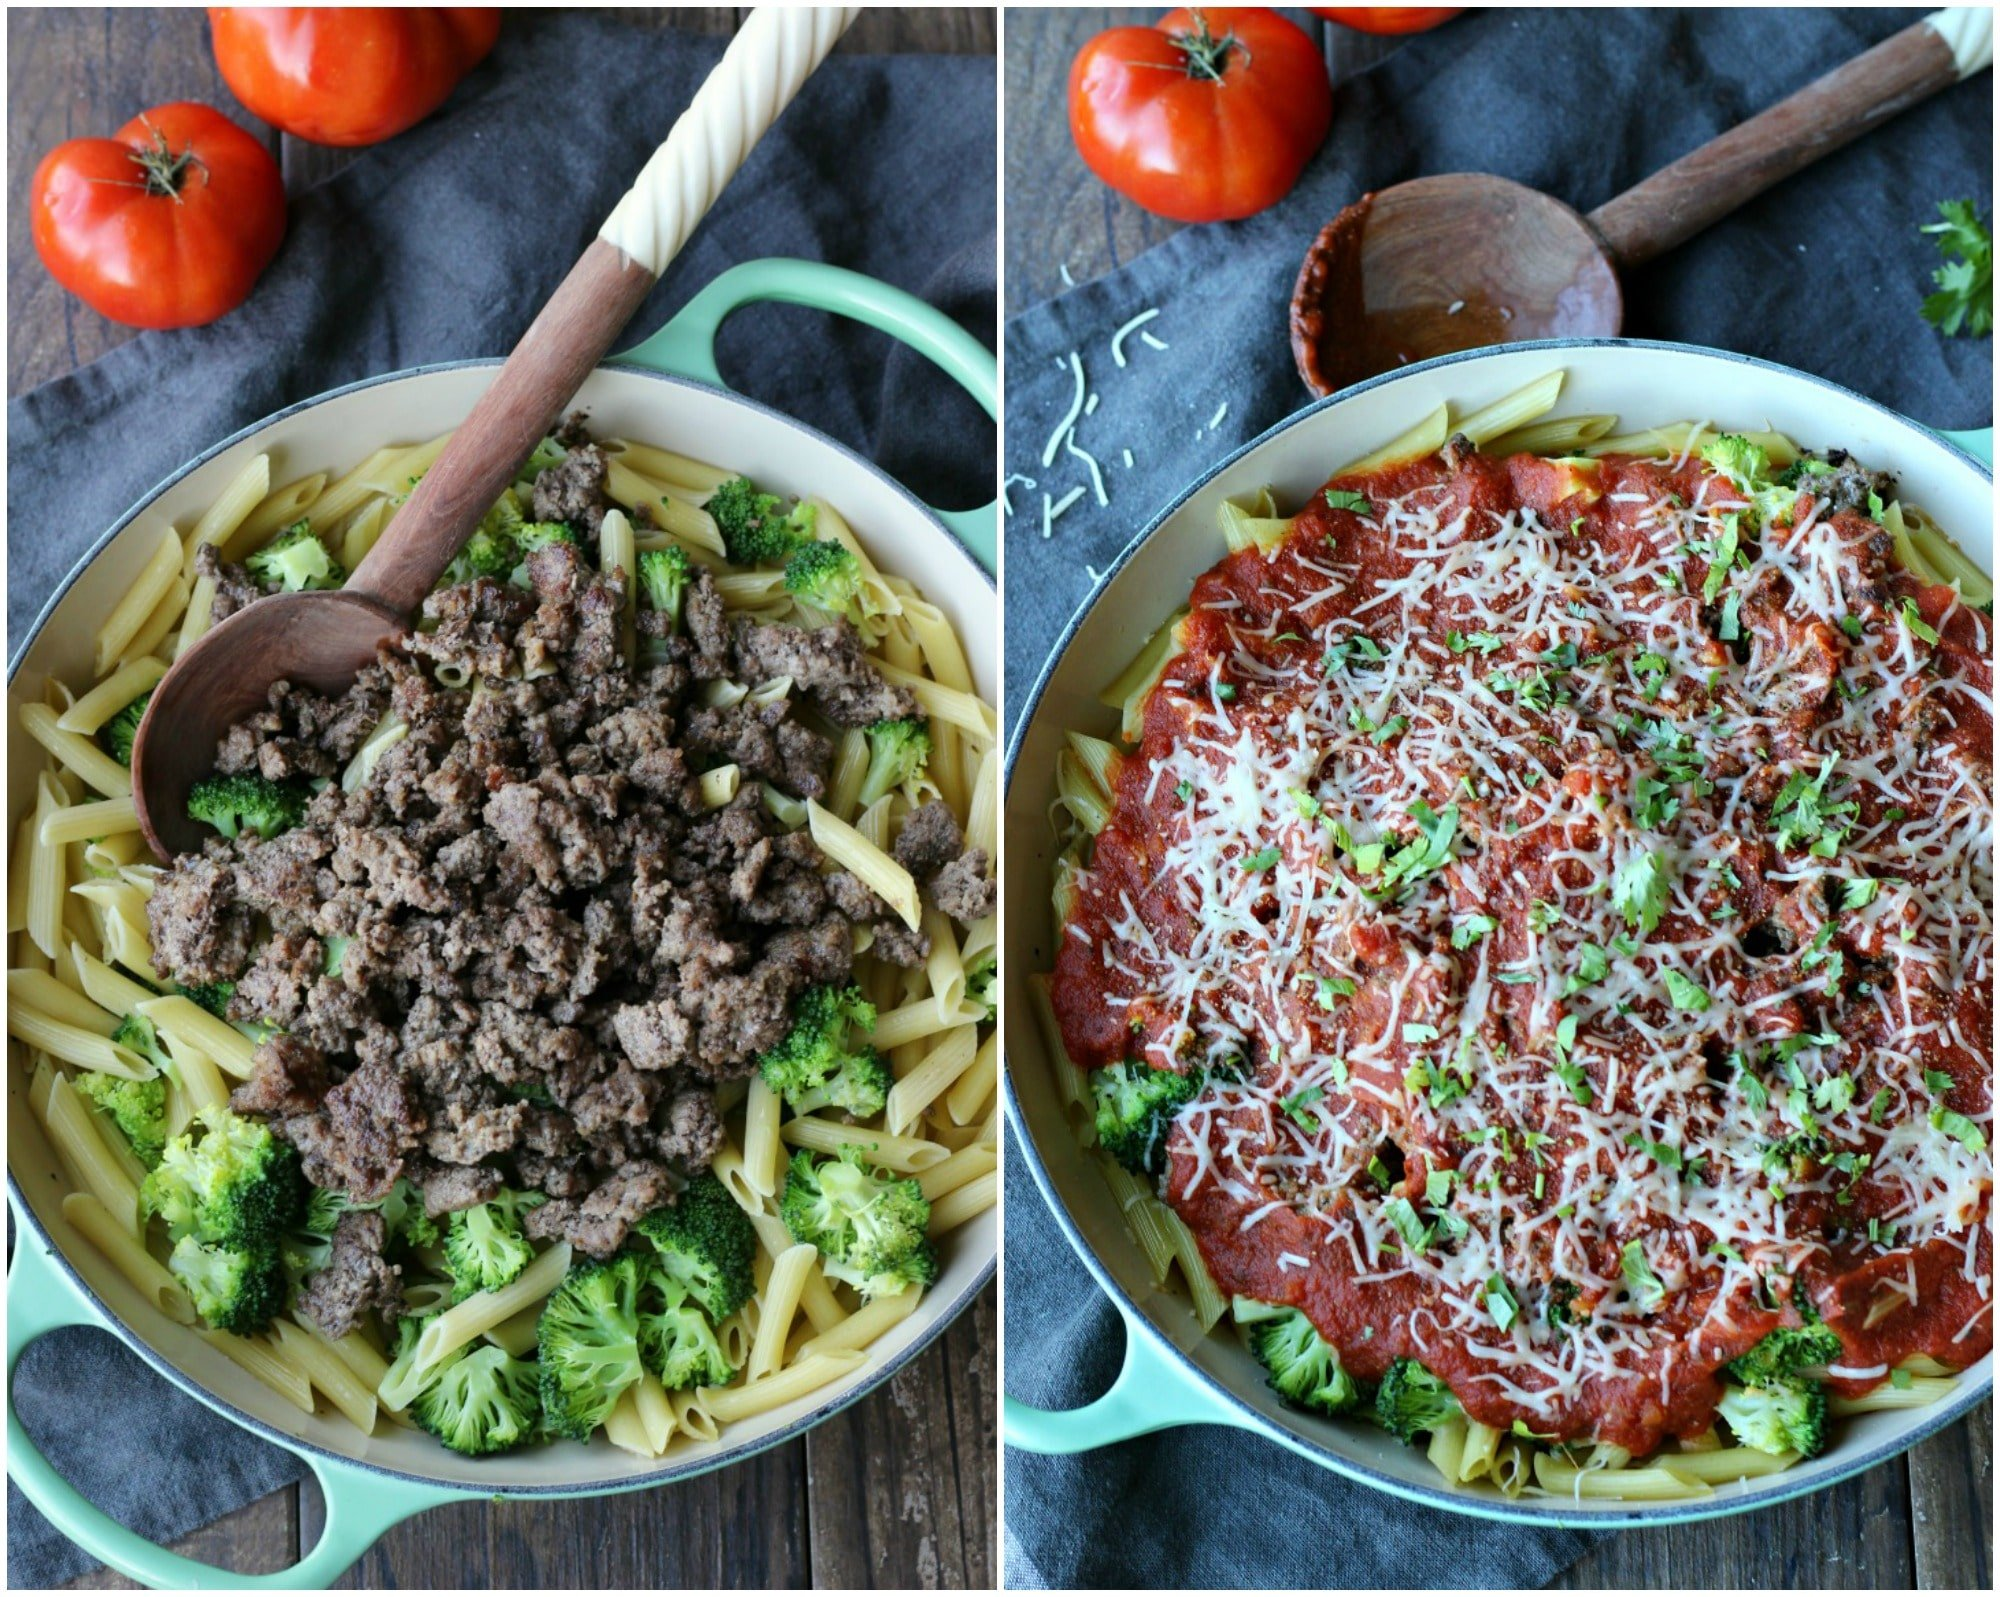 Easy Baked Pasta with Ground Beef | gardeninthekitchen.com